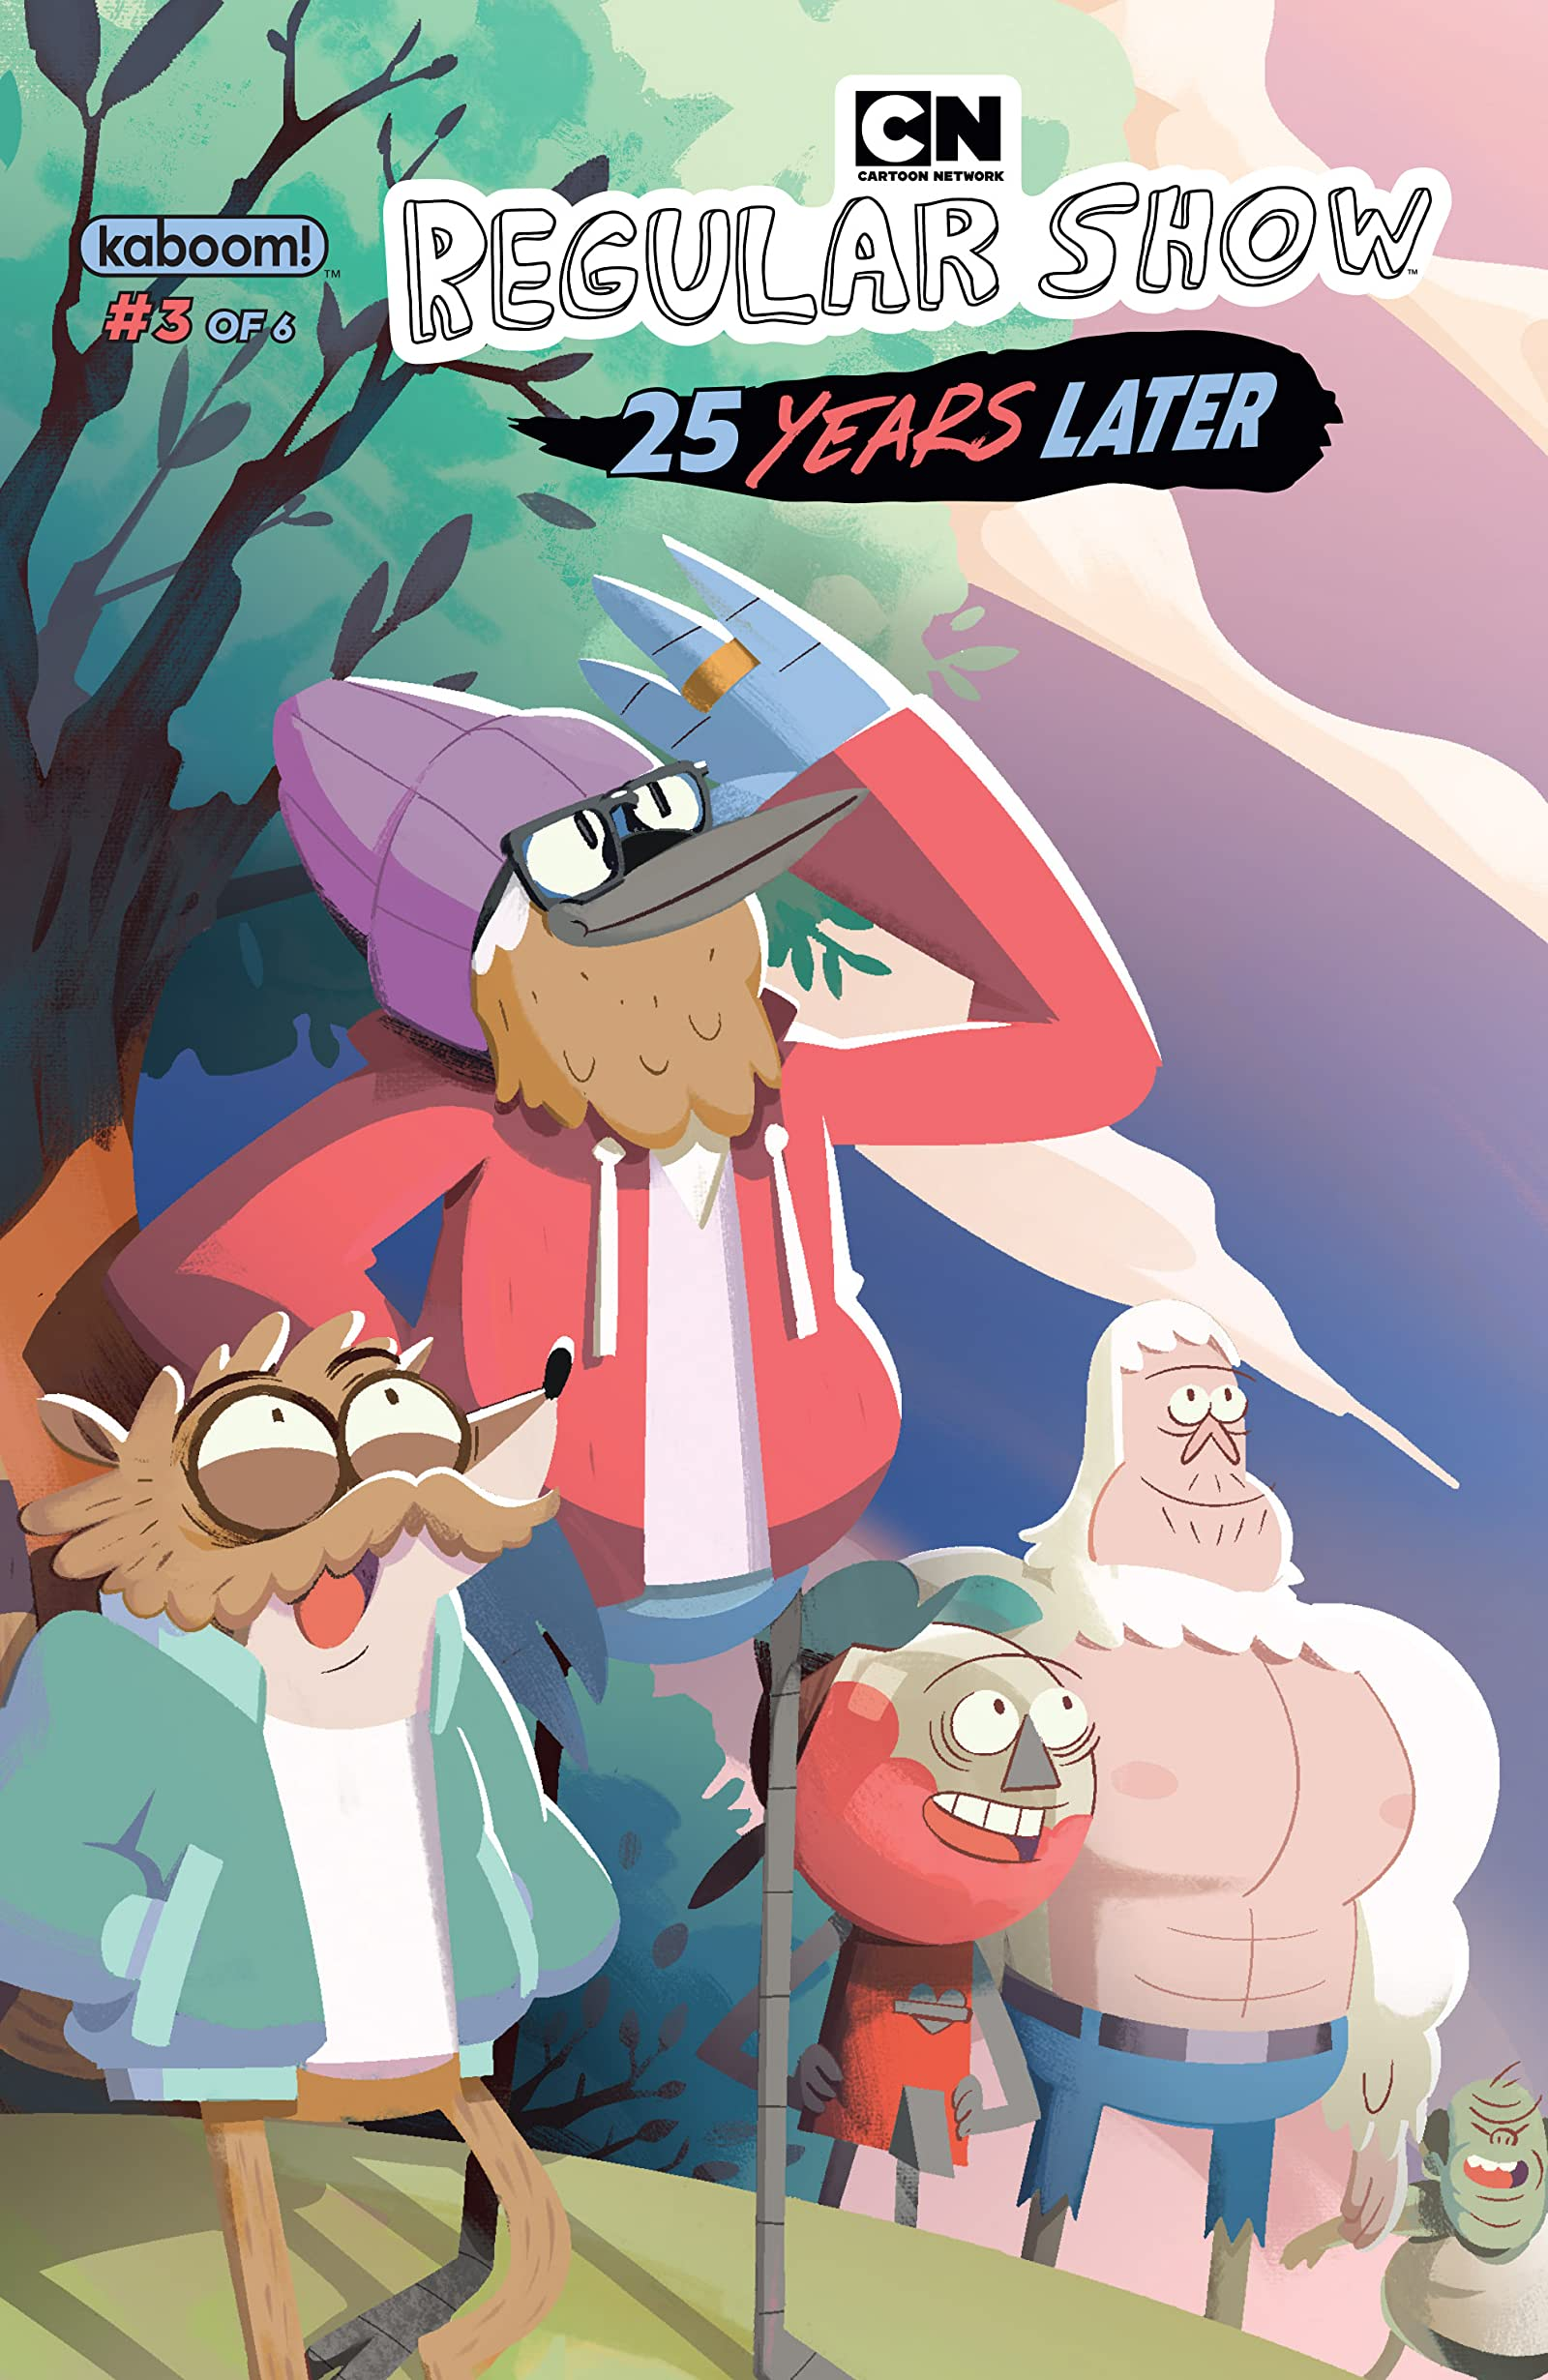 Regular Show: 25 Years Later #3 - Comics by comiXology